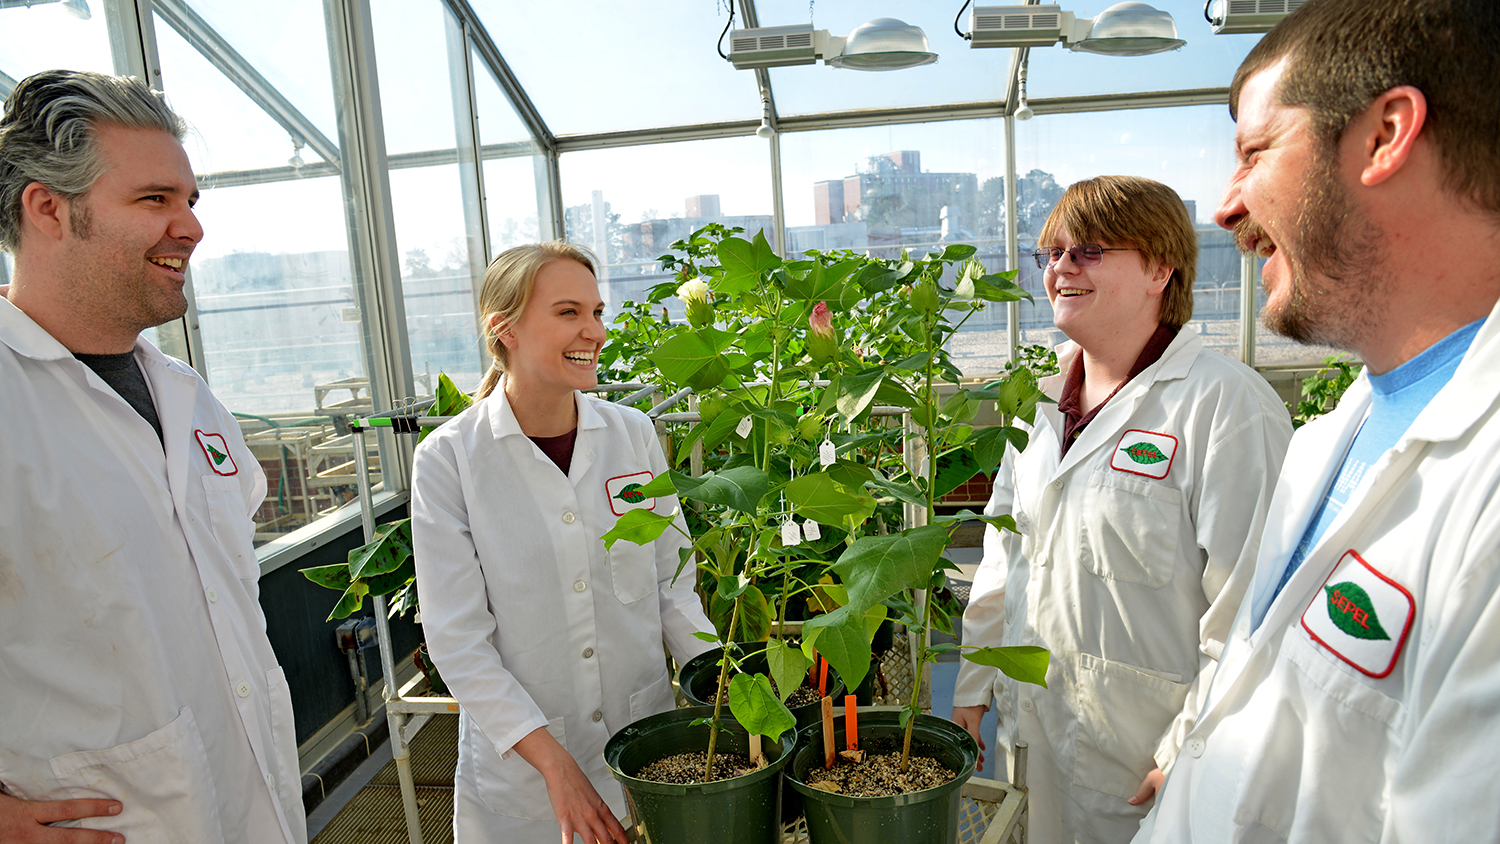 Students conduct research in the Phytotron greenhouse.